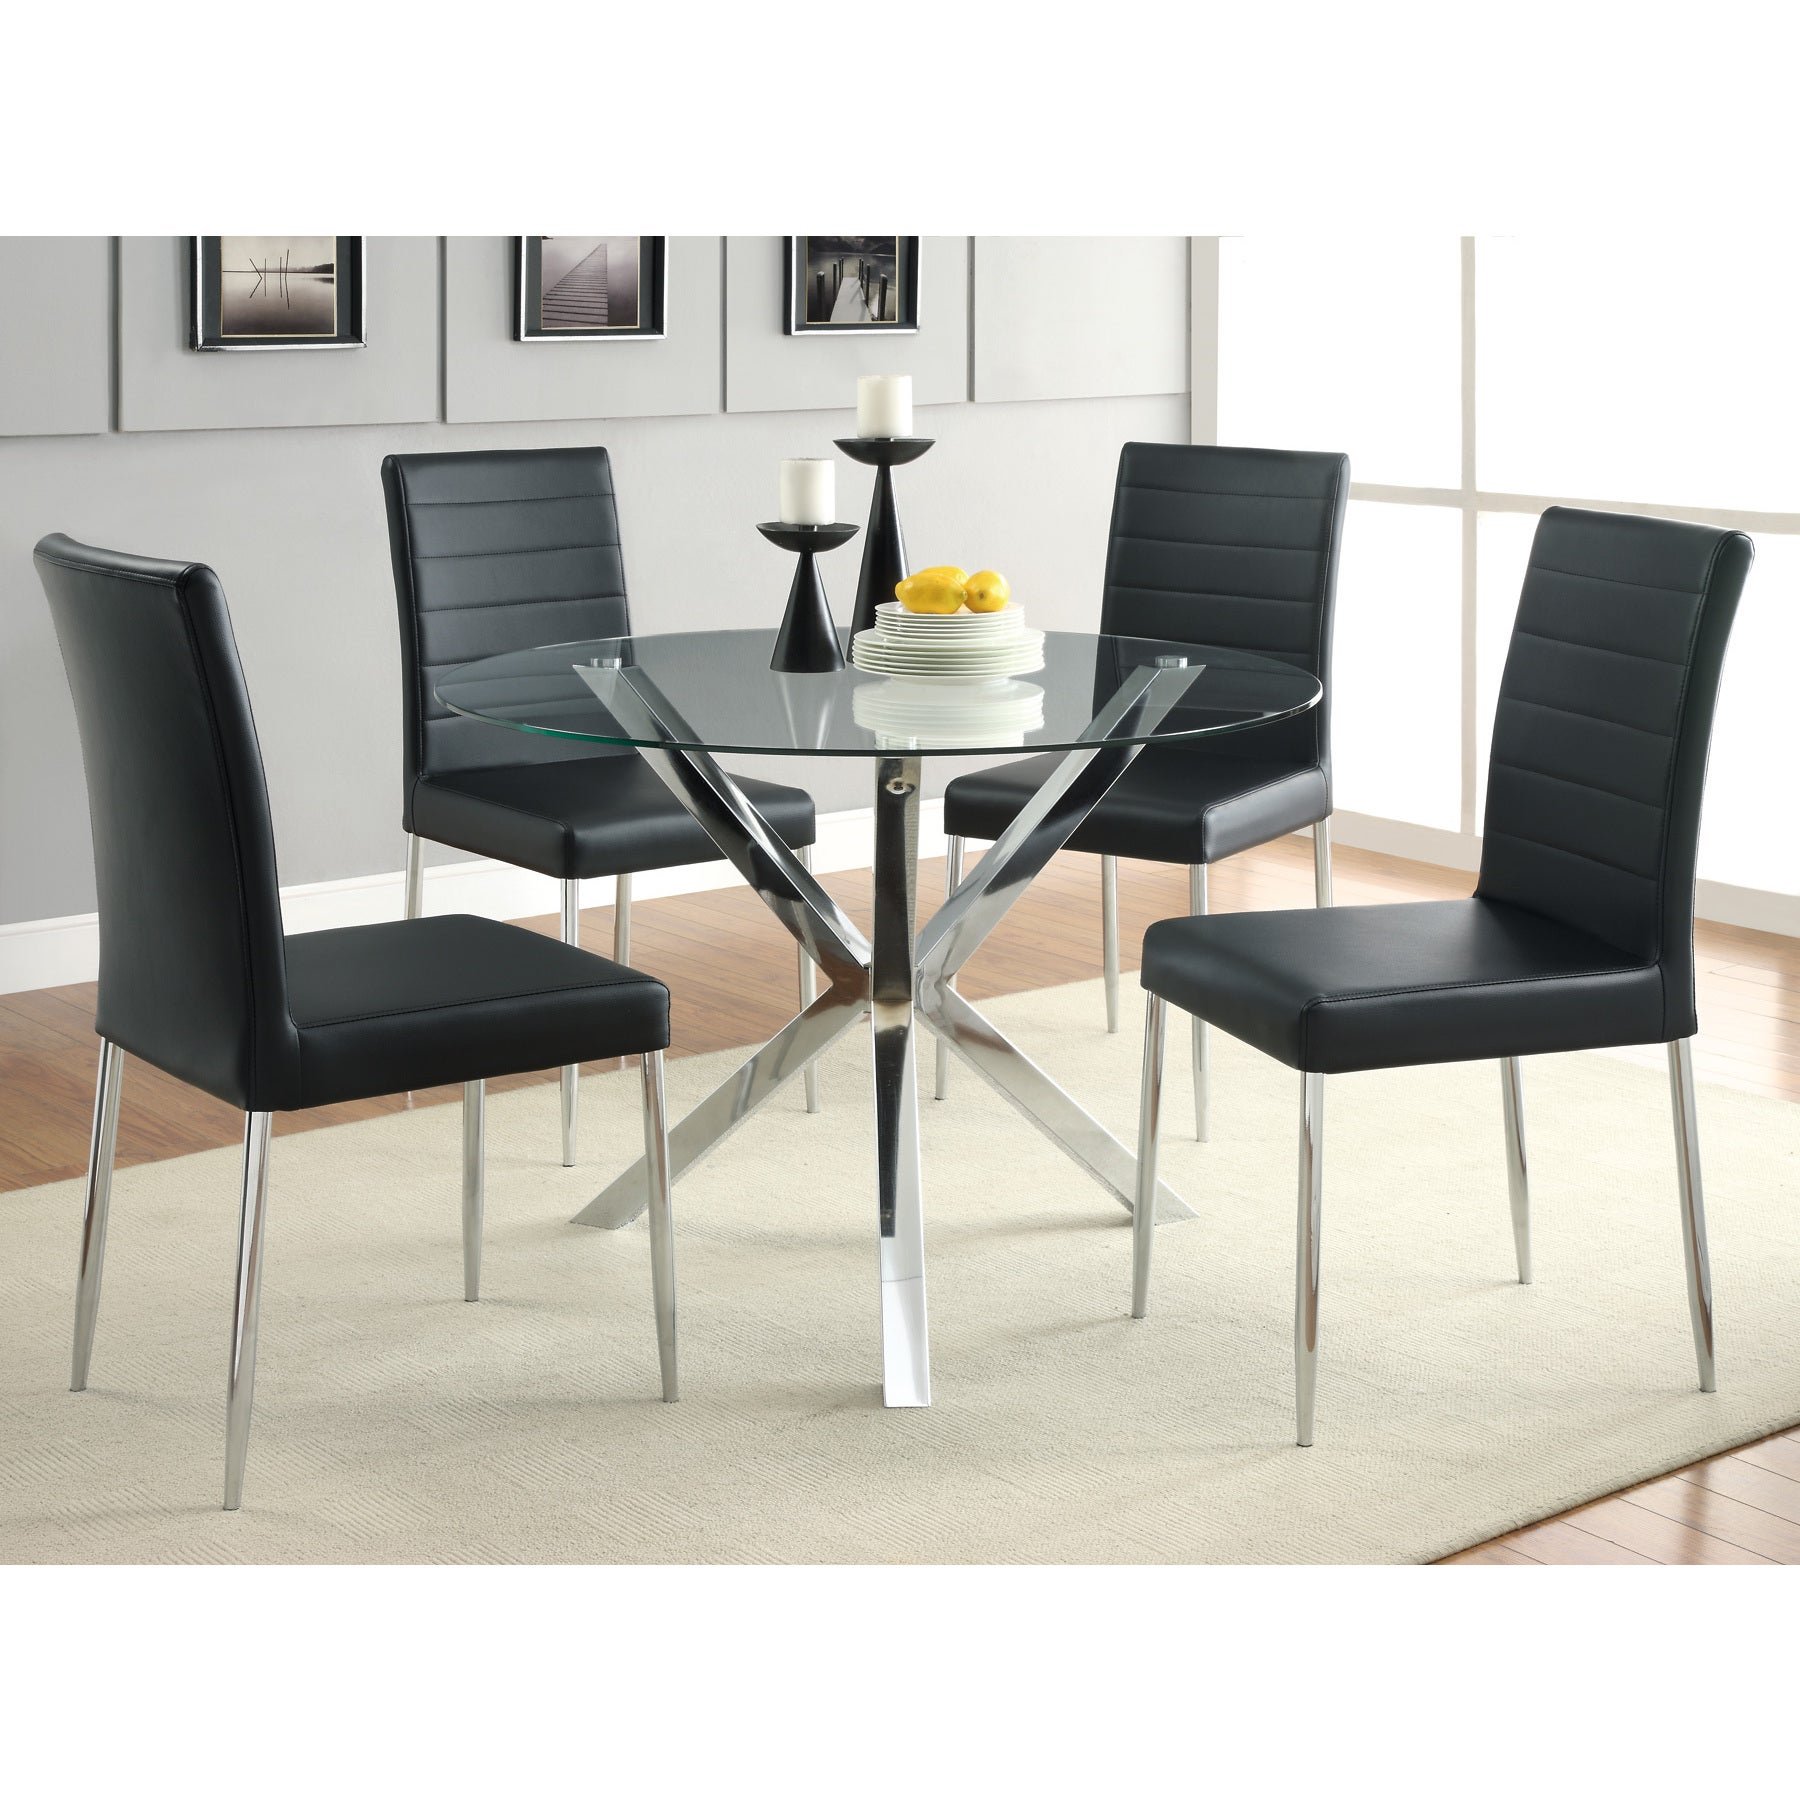 Coaster pany Chrome Glass Top Dining Table Free Shipping Today